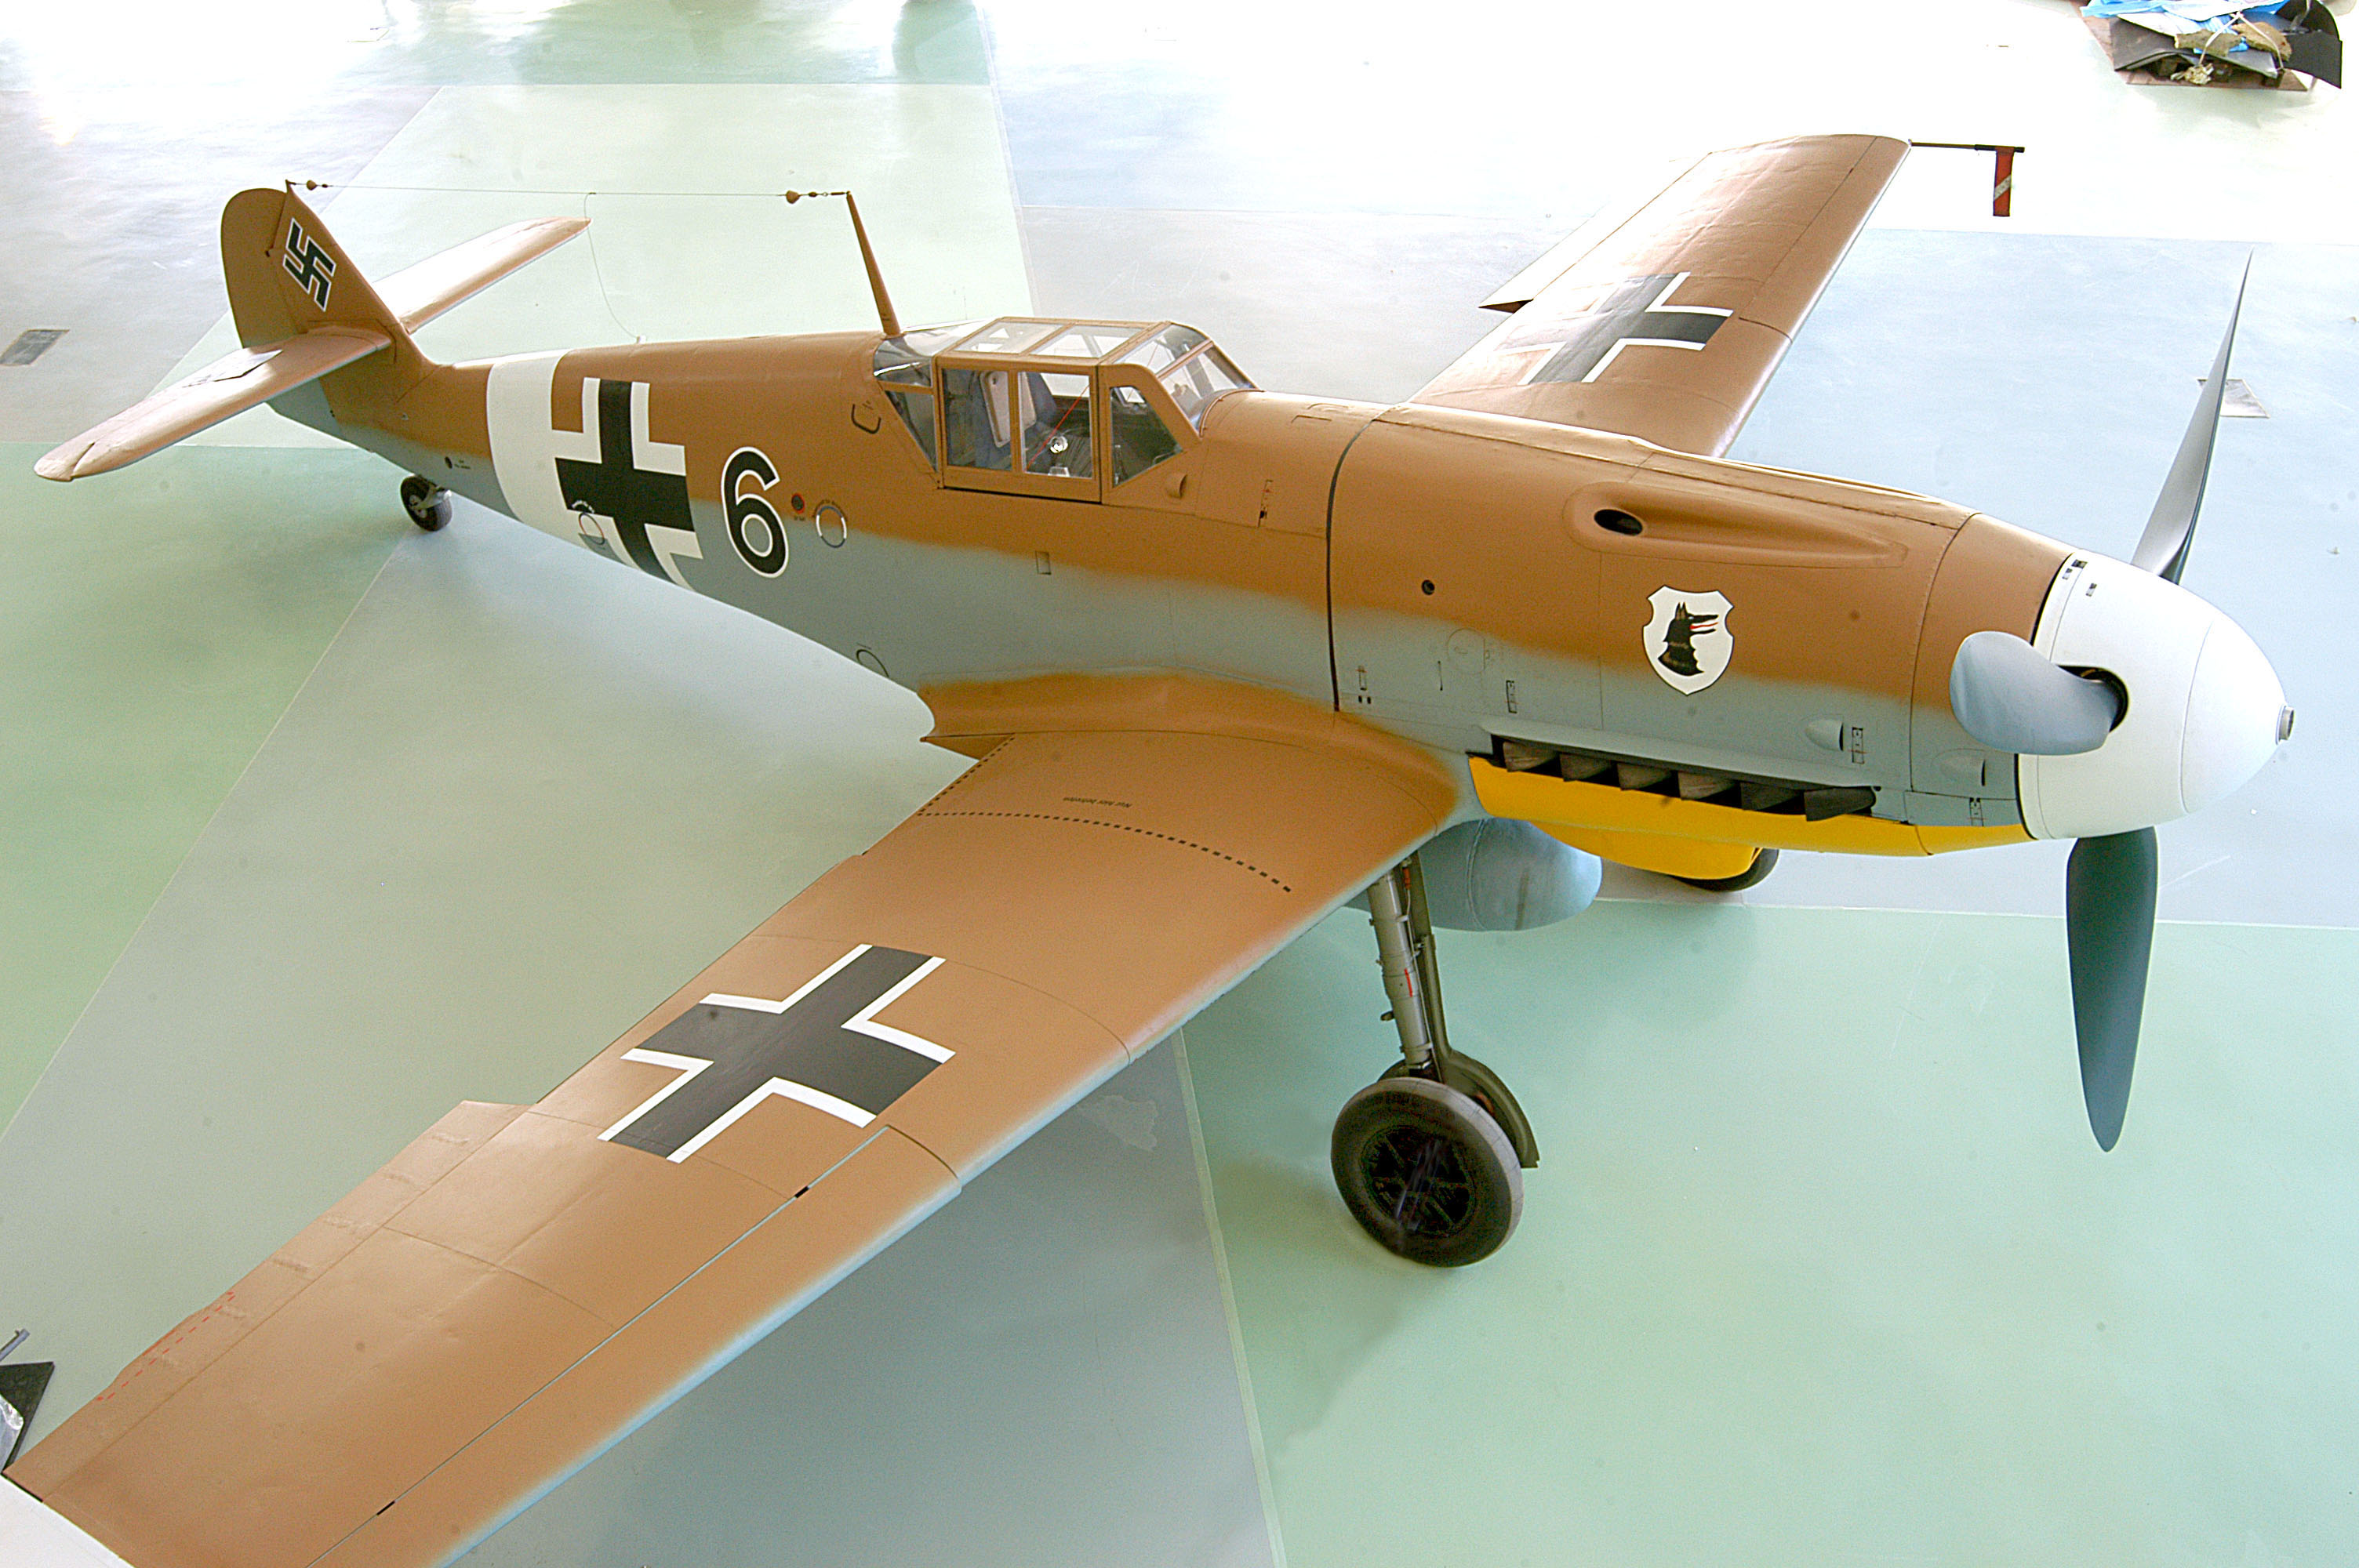 The rare Messerschmitt BF109G-2